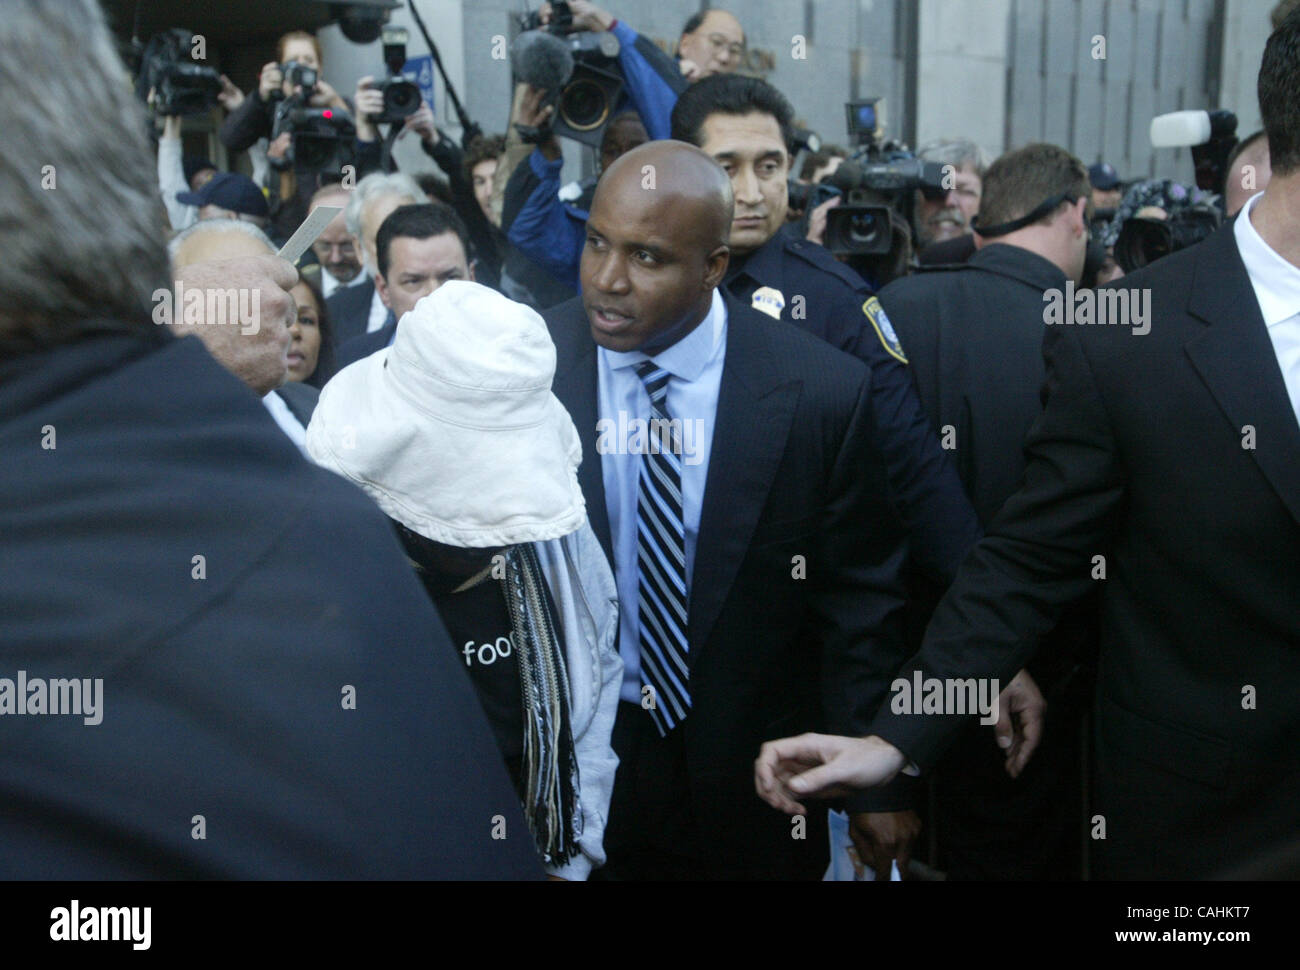 Barry Bonds leaves from his arraignment on federal perjury charges at the Phillip Burton Federal Courthouse in San - Stock Image